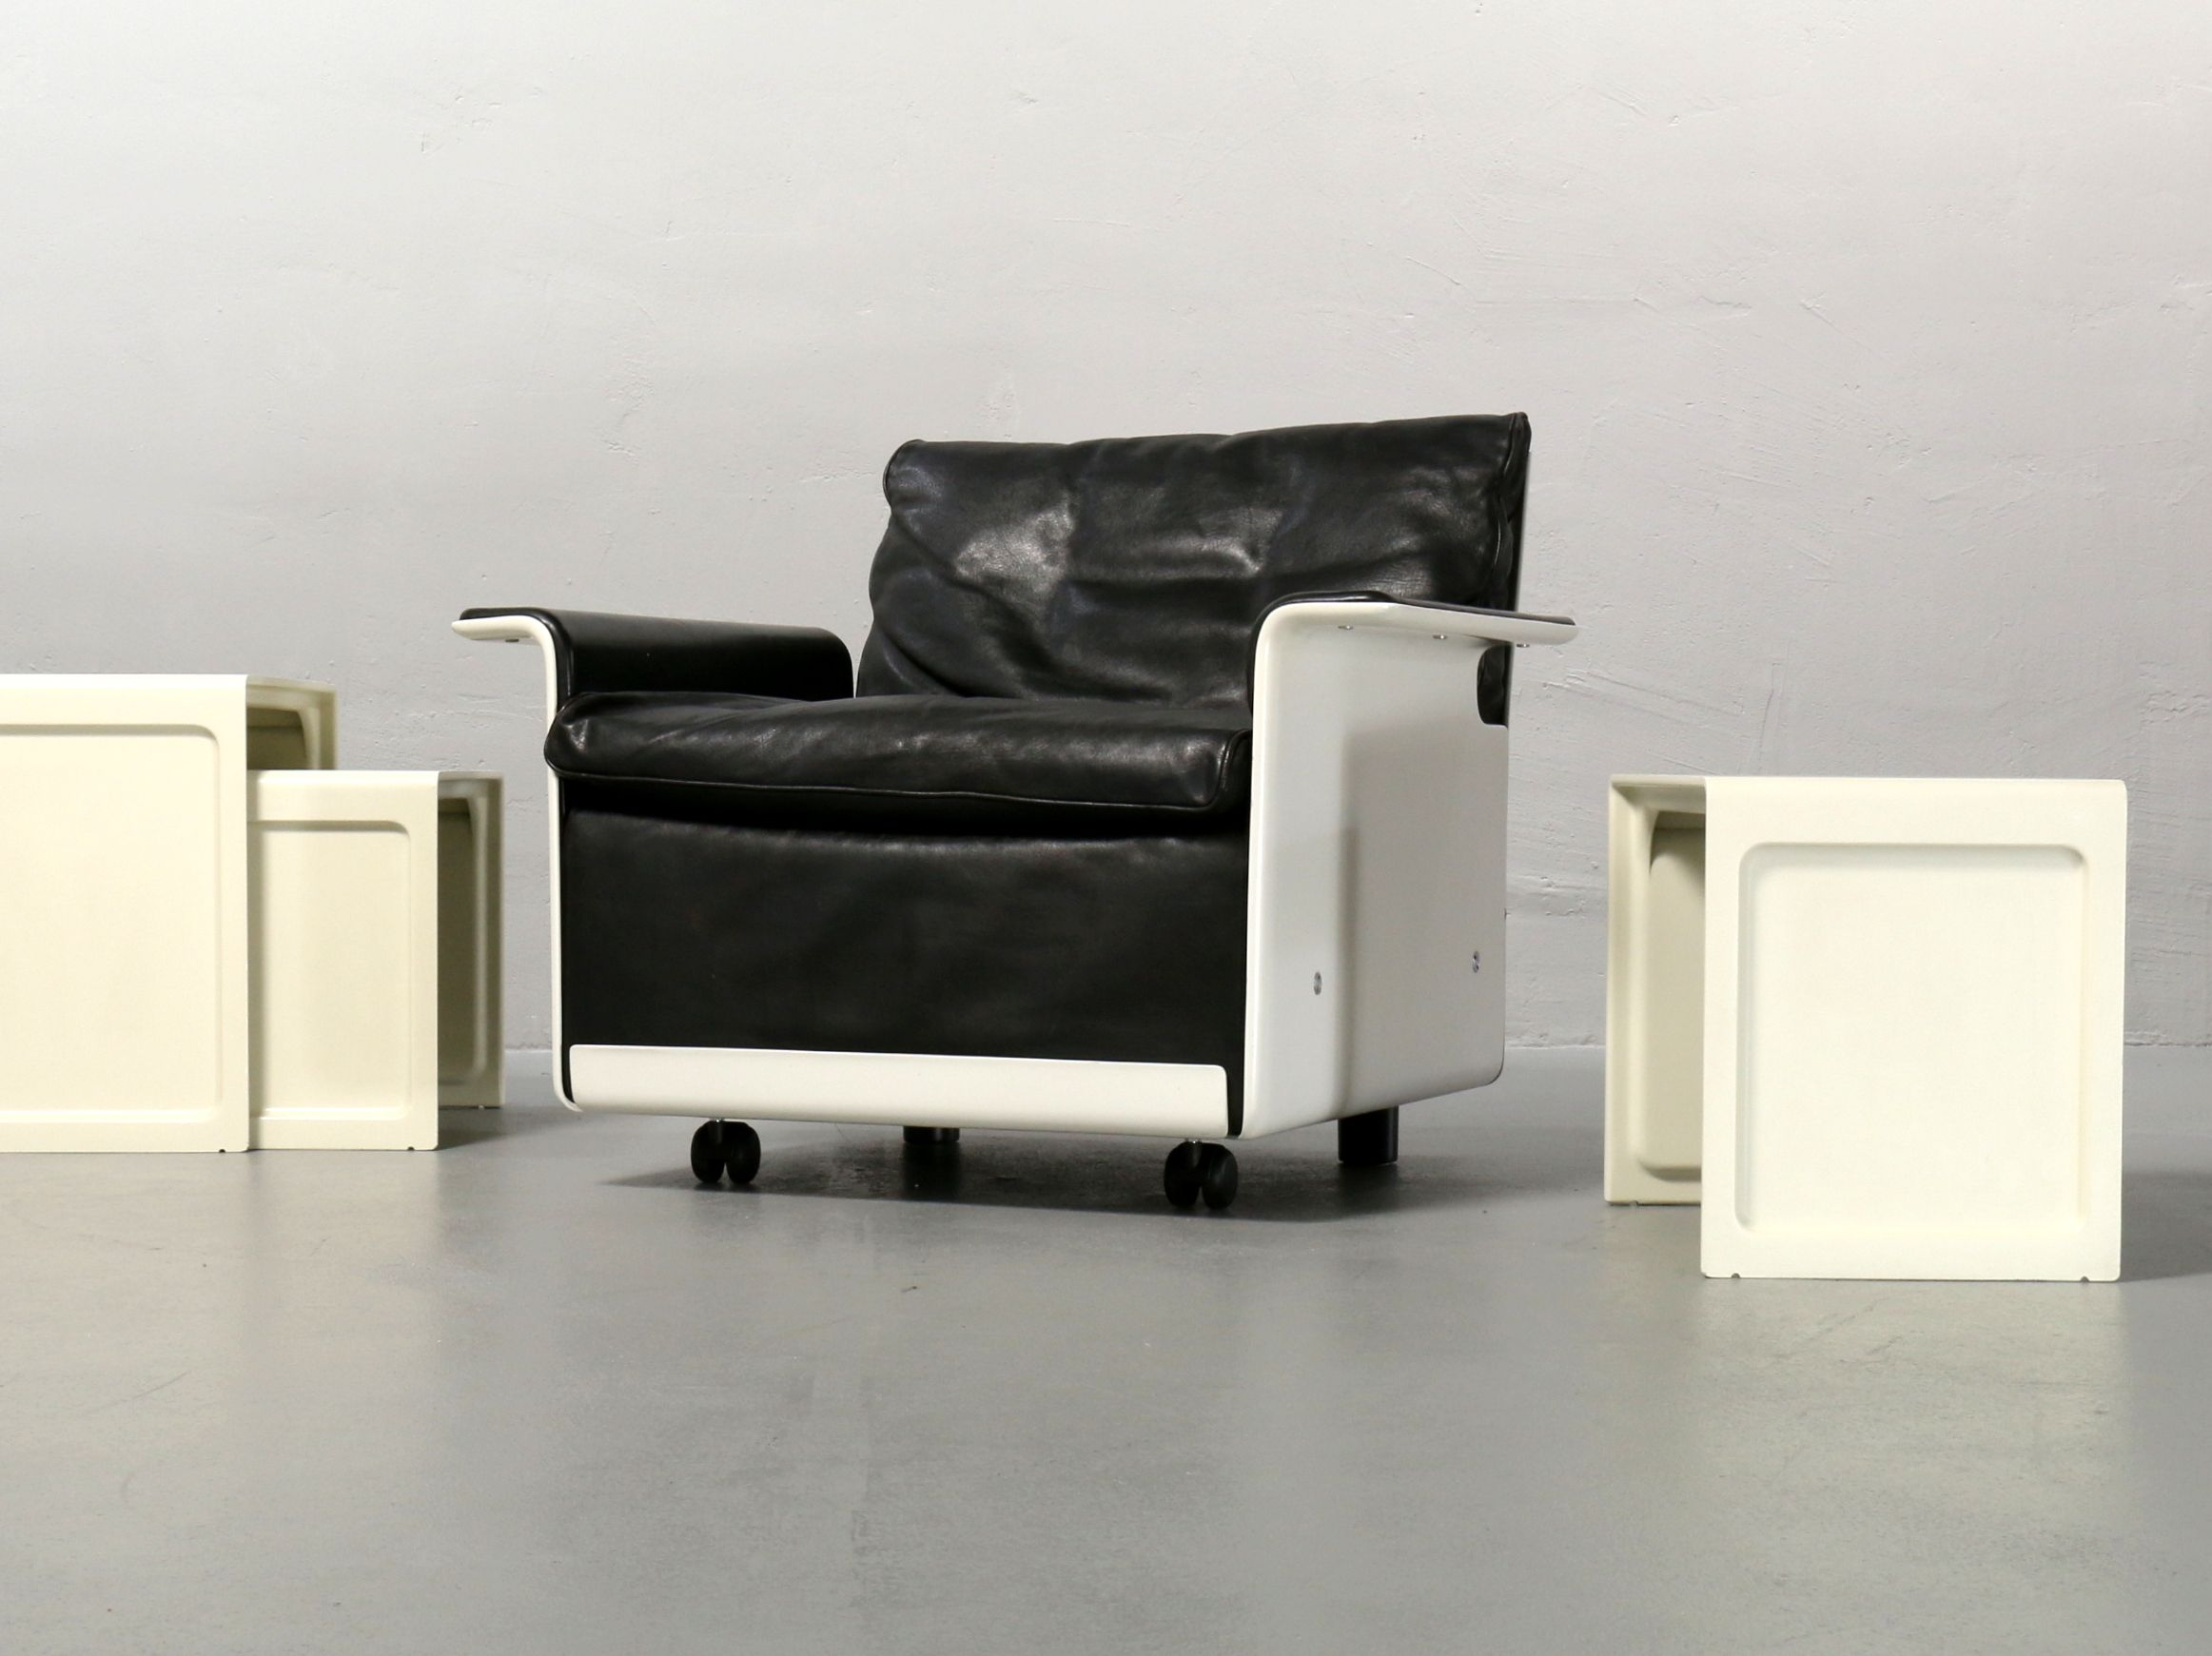 Frankfurt Minimal dieter rams for vitsoe chair programm 620 black white and side